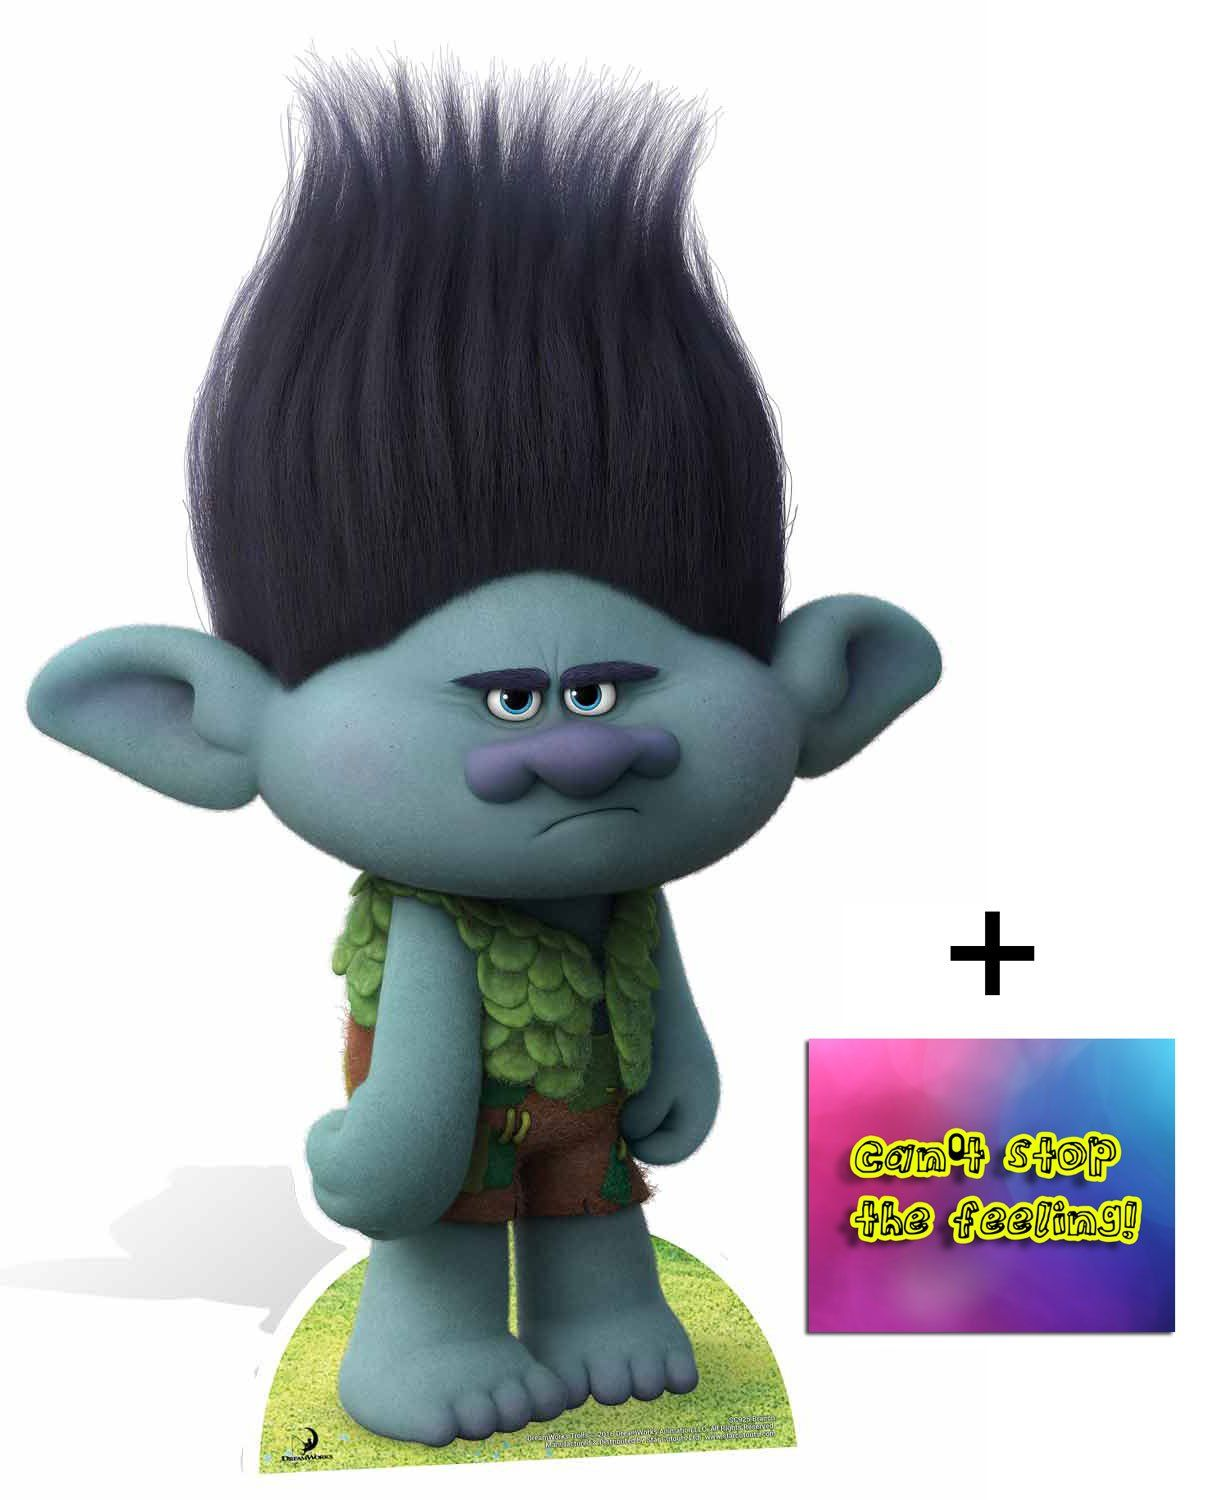 Fan Pack Branch From Trolls Cardboard Cutout Standee Standup Includes 8x10 Star Photo Visit The Image Link Cardboard Cutout Cutout Cardboard